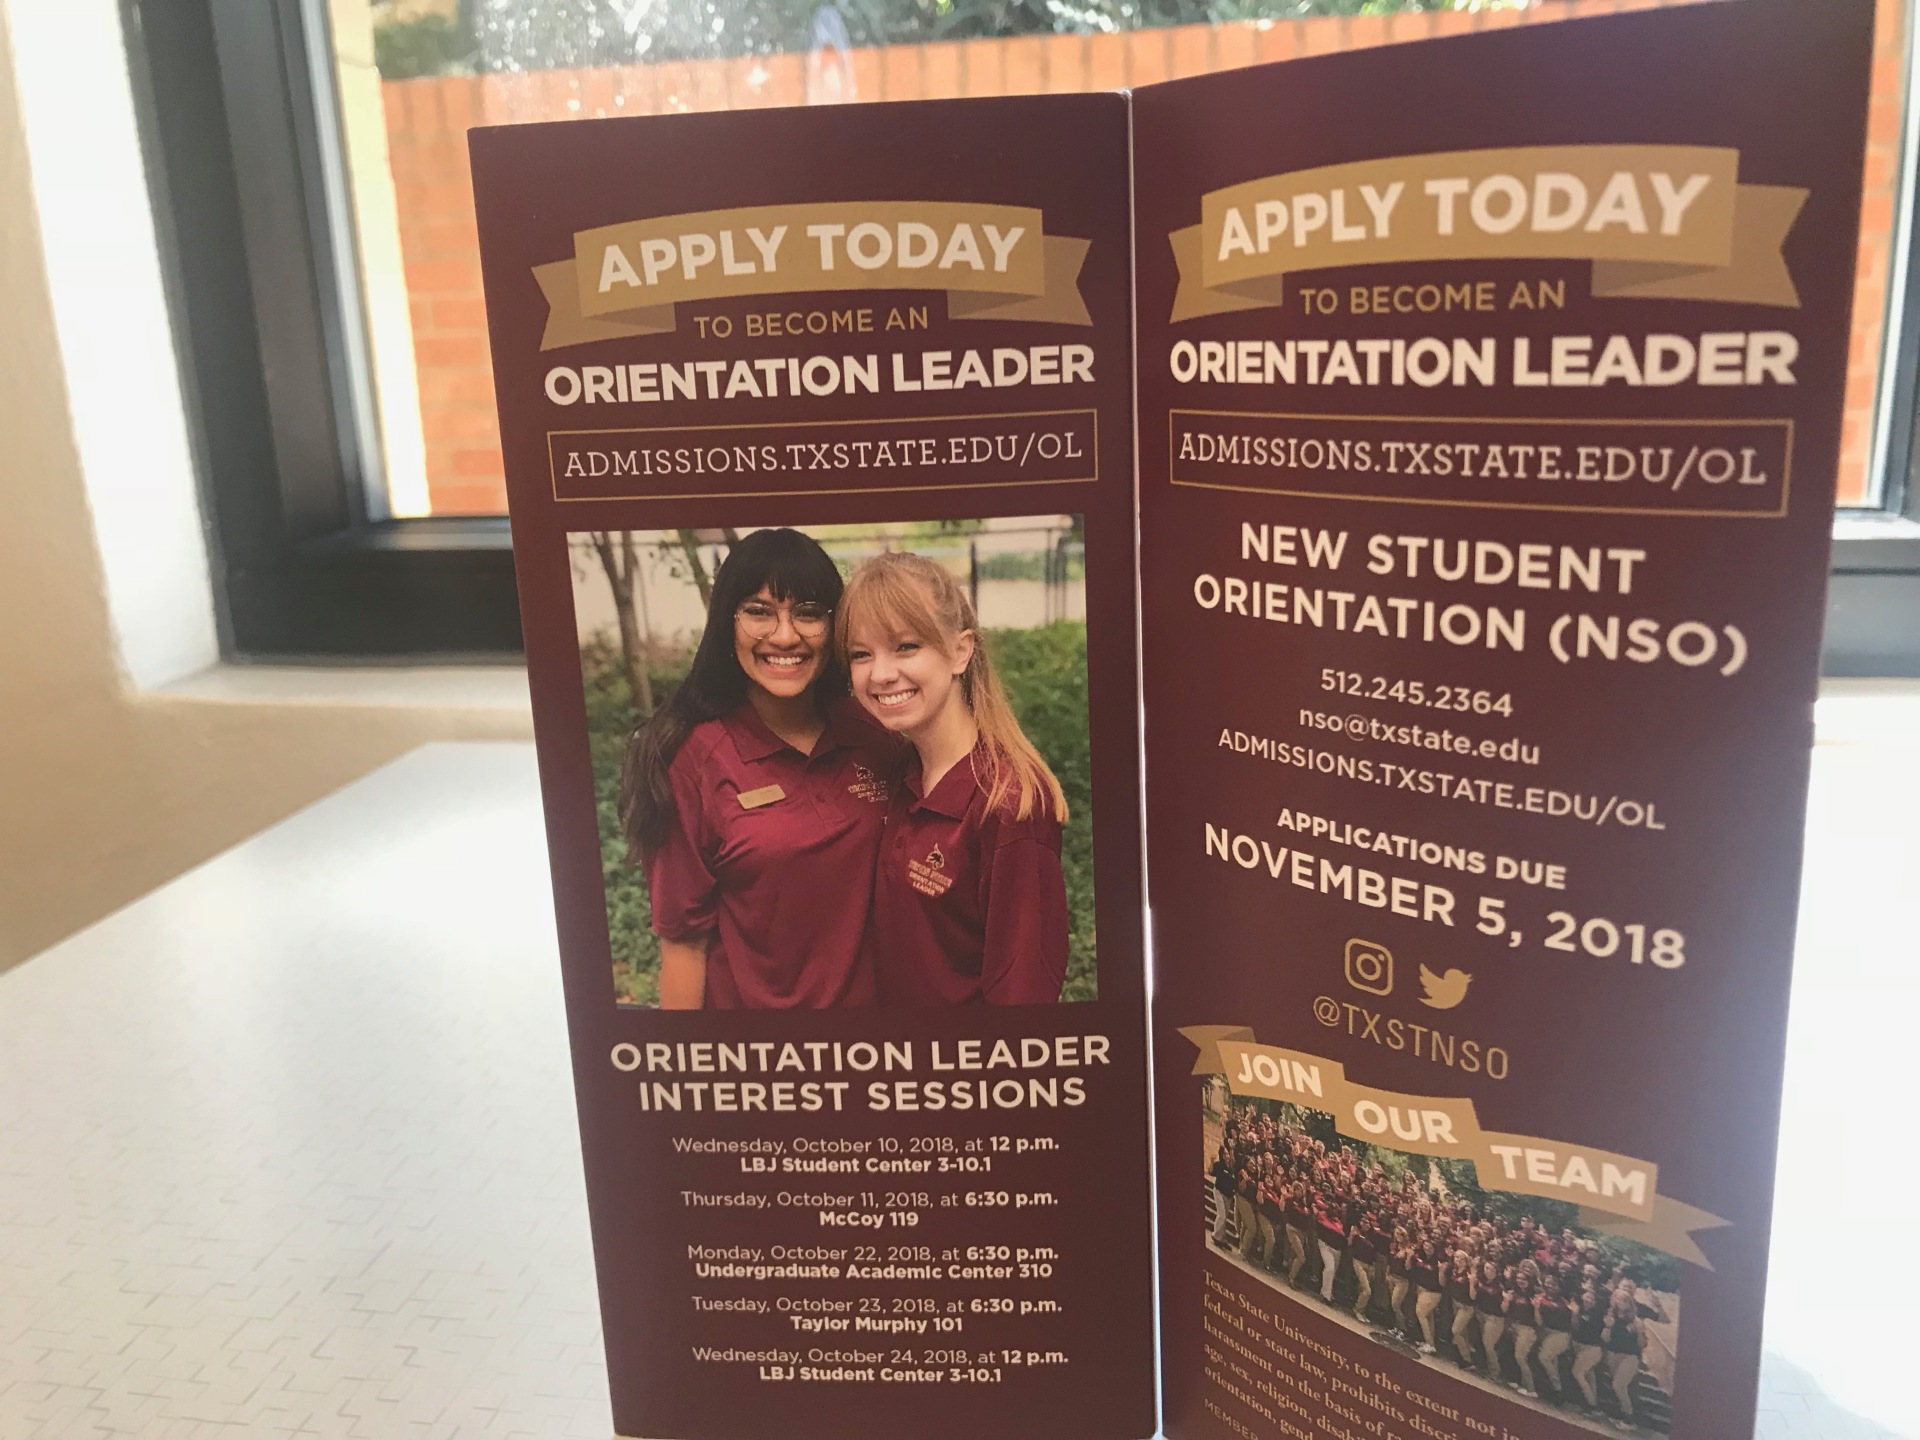 an orientation brochure that says apply today